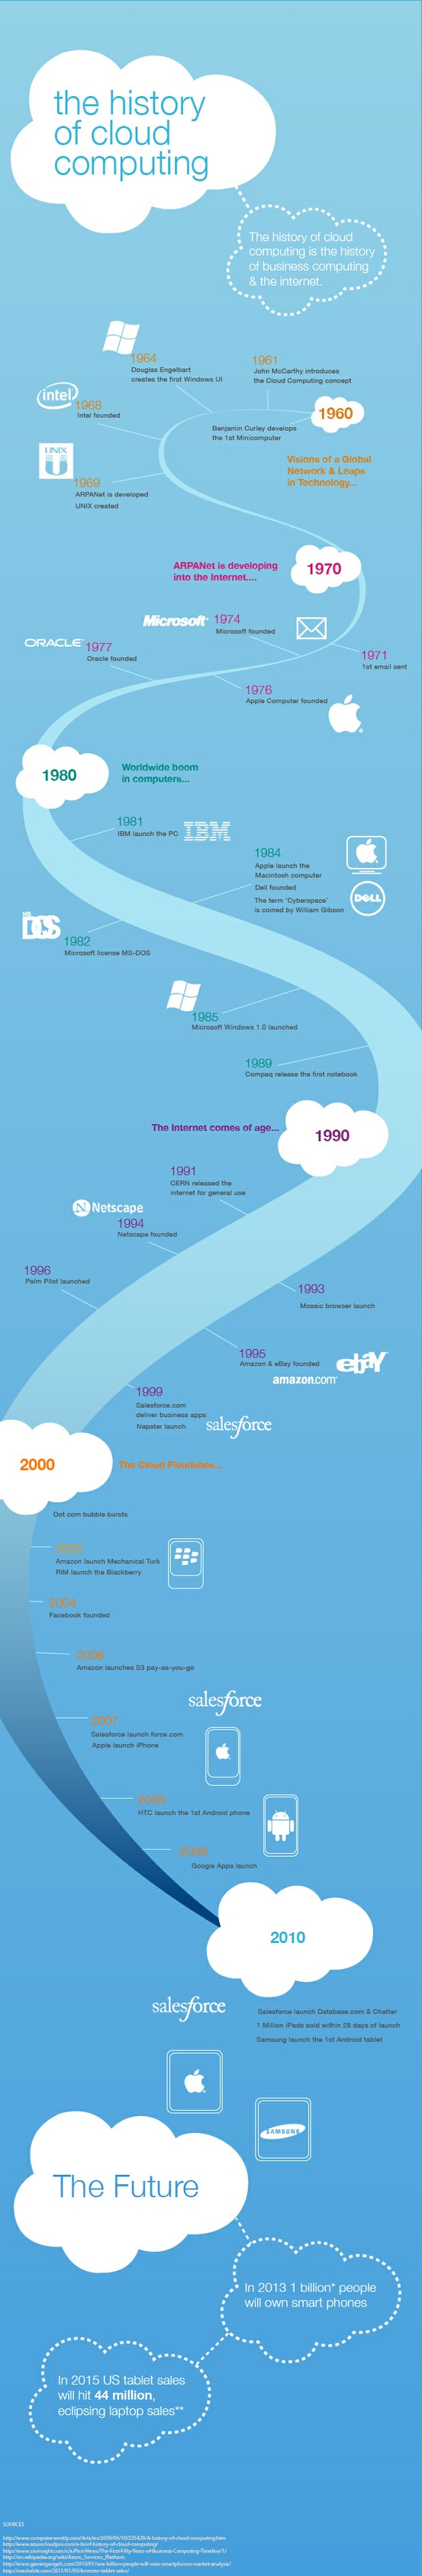 """history of cloud computing The history of cloud computing starts way back in the 1960s, when an """"intergalactic computer network"""" was first suggested, and in recent years the technology has served to shake-up both the enterprise it and supplier landscape."""